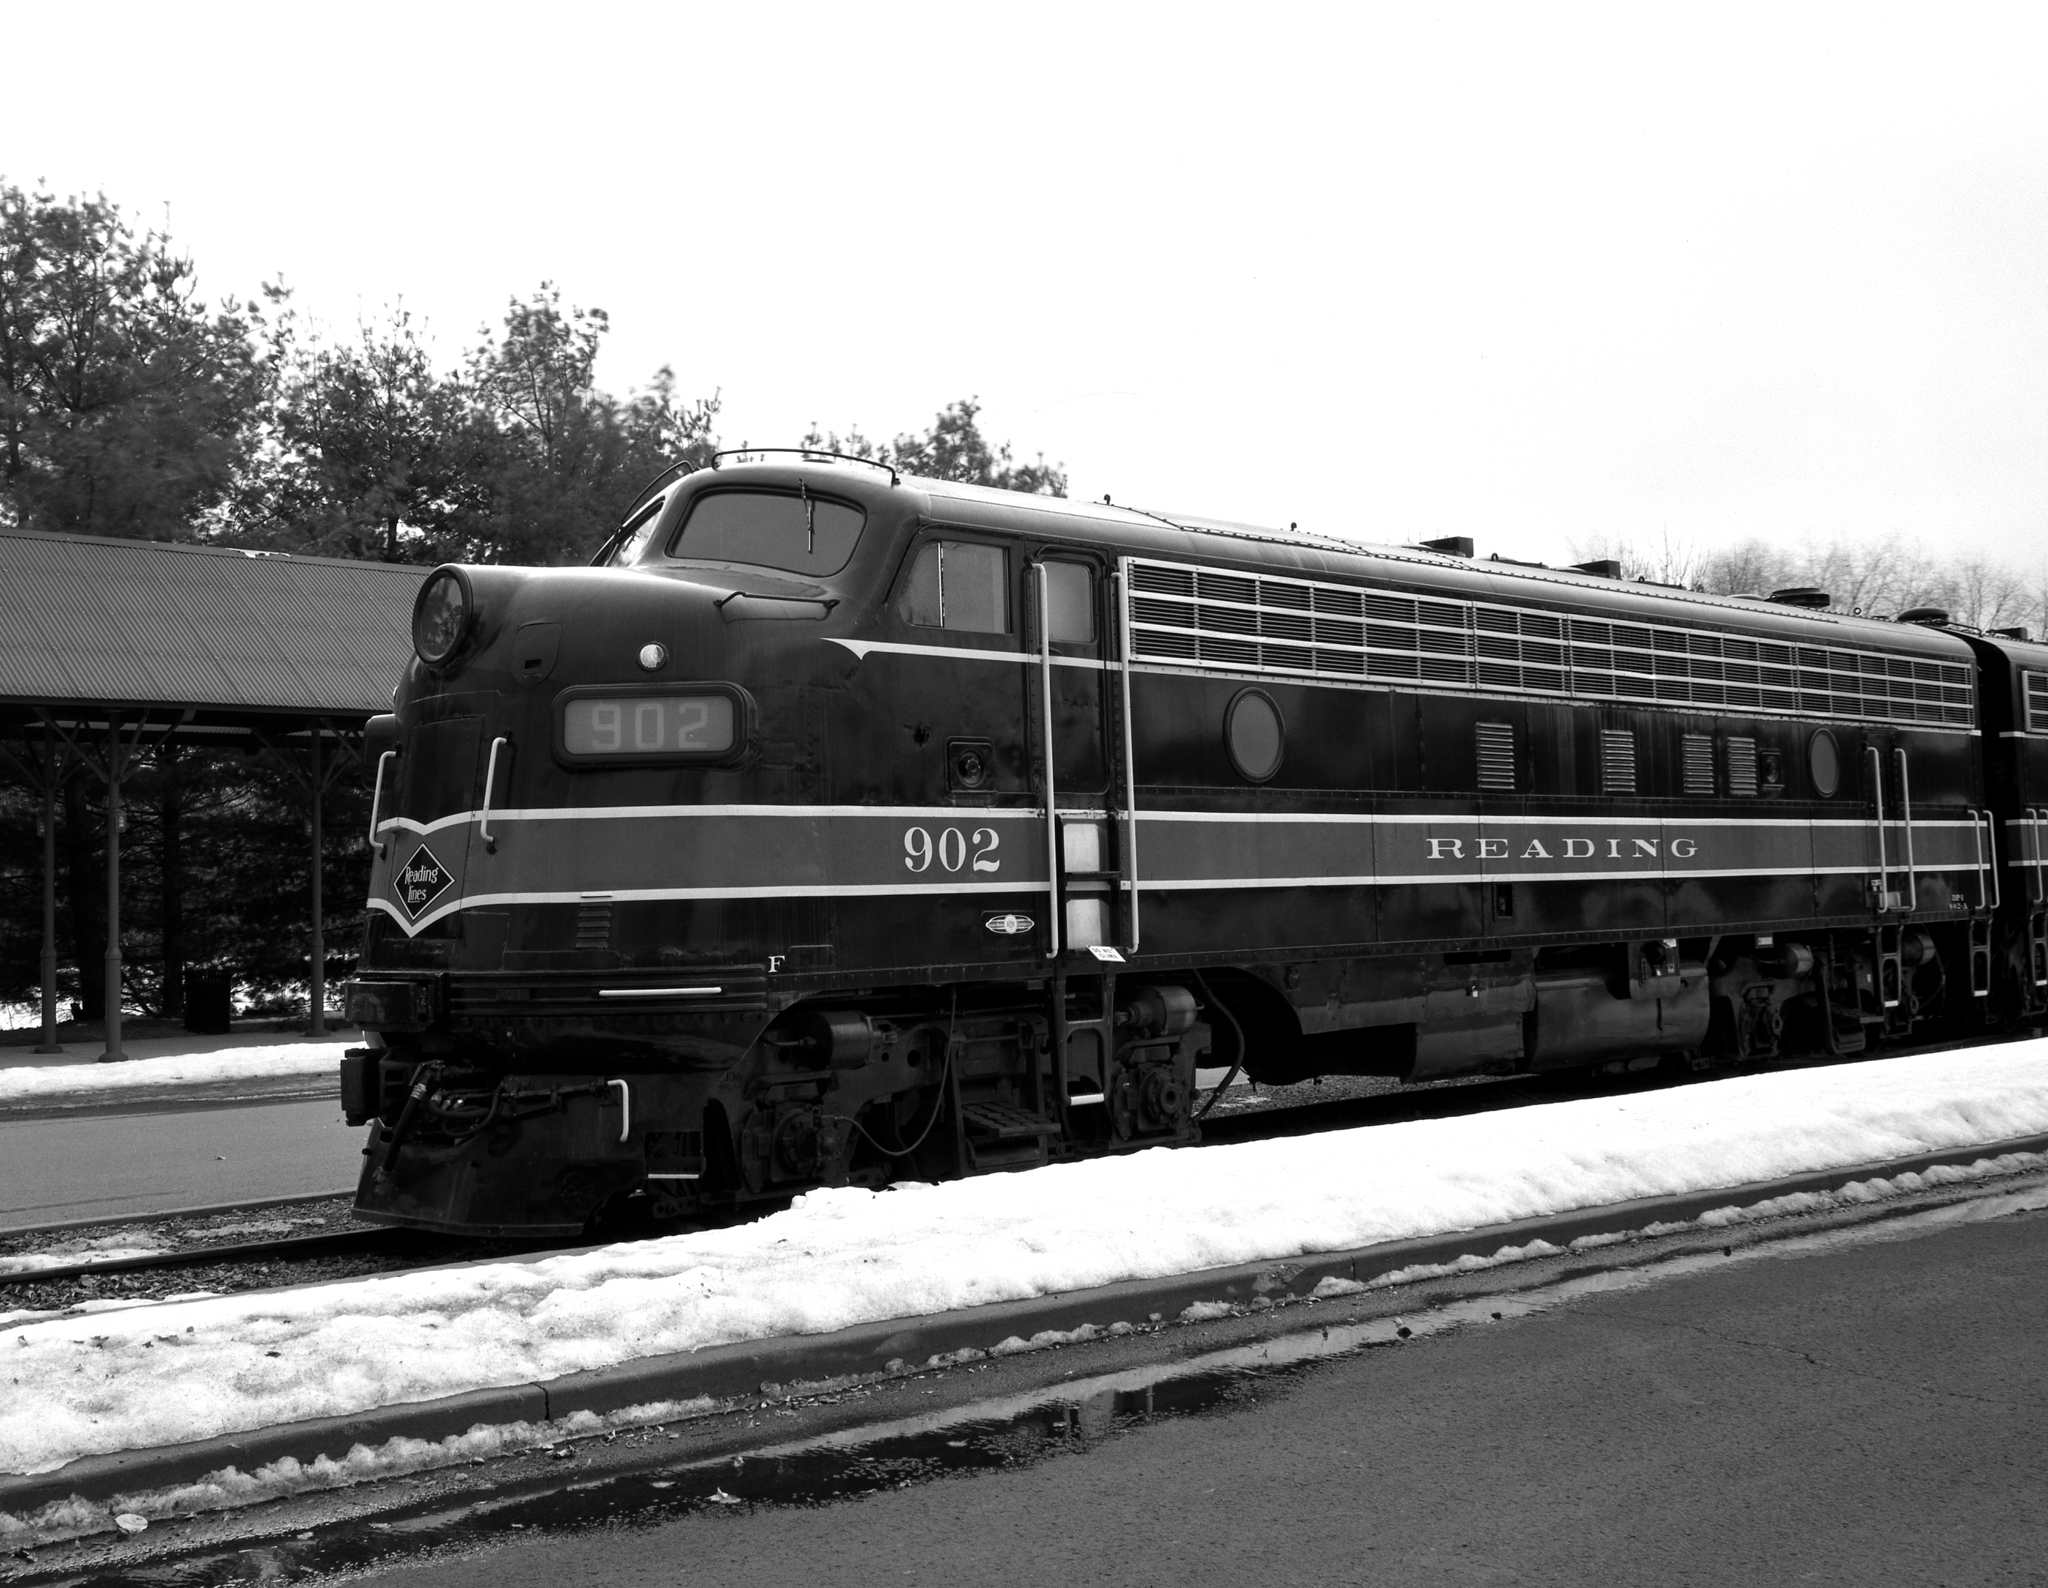 4x5_for_365_project_067_Steamtown_Reading_loco_902.jpg